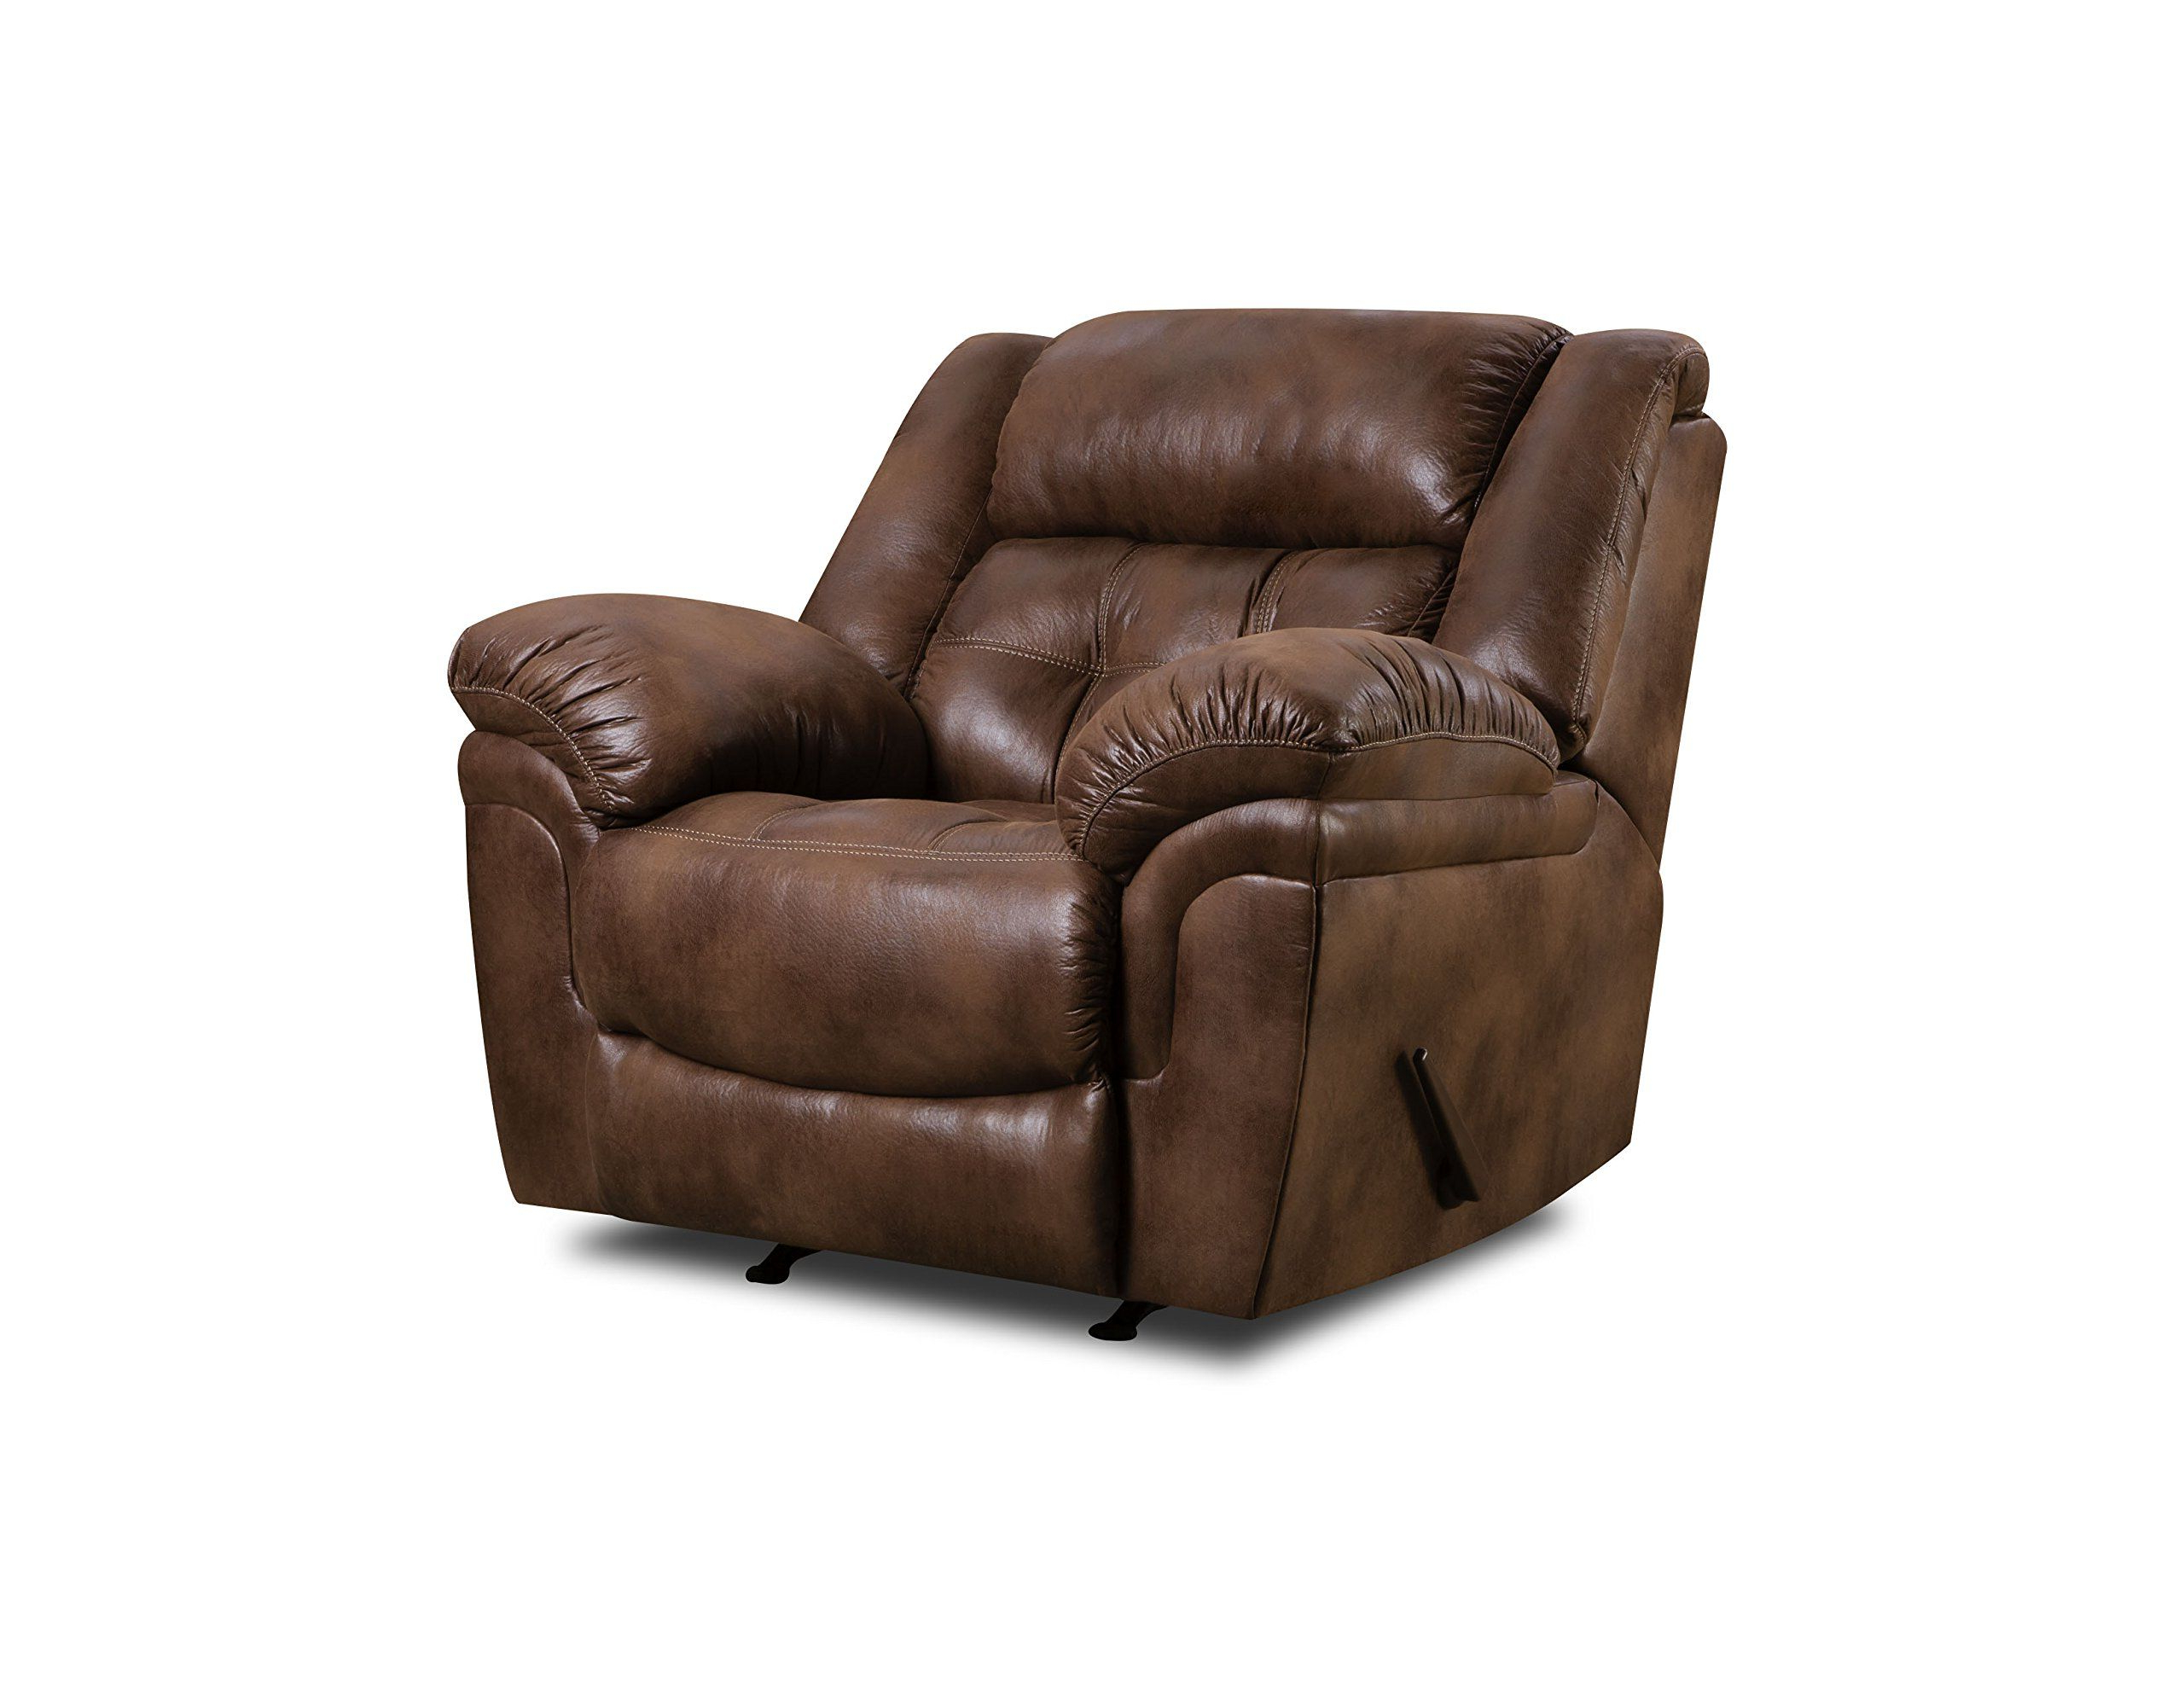 Simmons Upholstery Wisconsin Beautyrest Rocker Recliner Wisconsin Inside Latest Hercules Chocolate Swivel Glider Recliners (View 18 of 20)